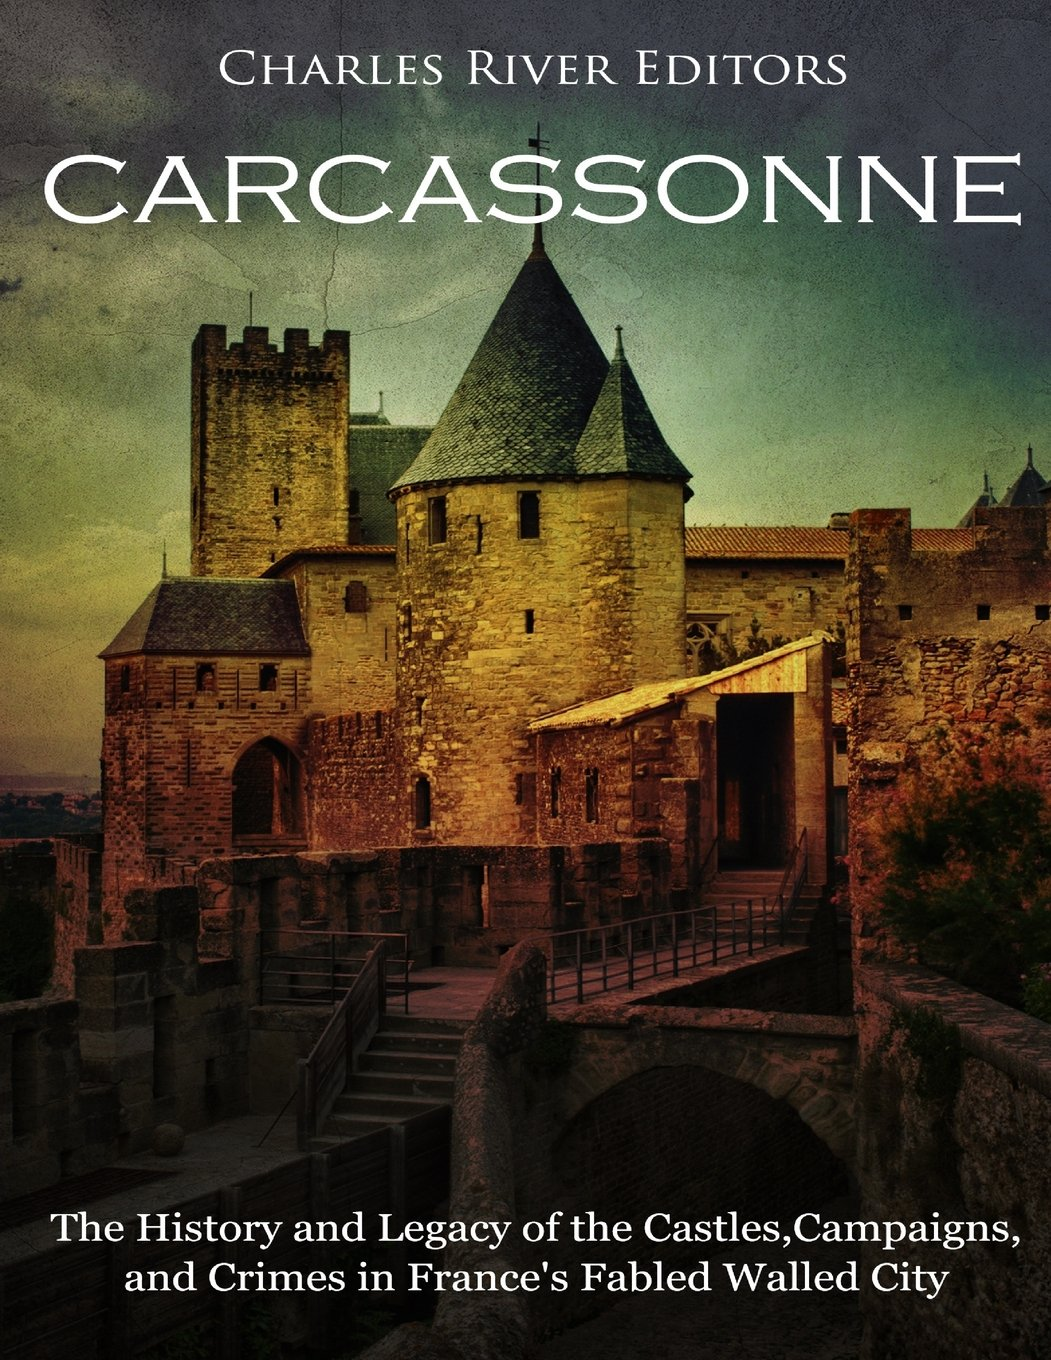 Carcassonne: The History and Legacy of the Castles, Campaigns, and Crimes in Frances Fabled Walled City: Amazon.es: Charles River Editors: Libros en idiomas extranjeros